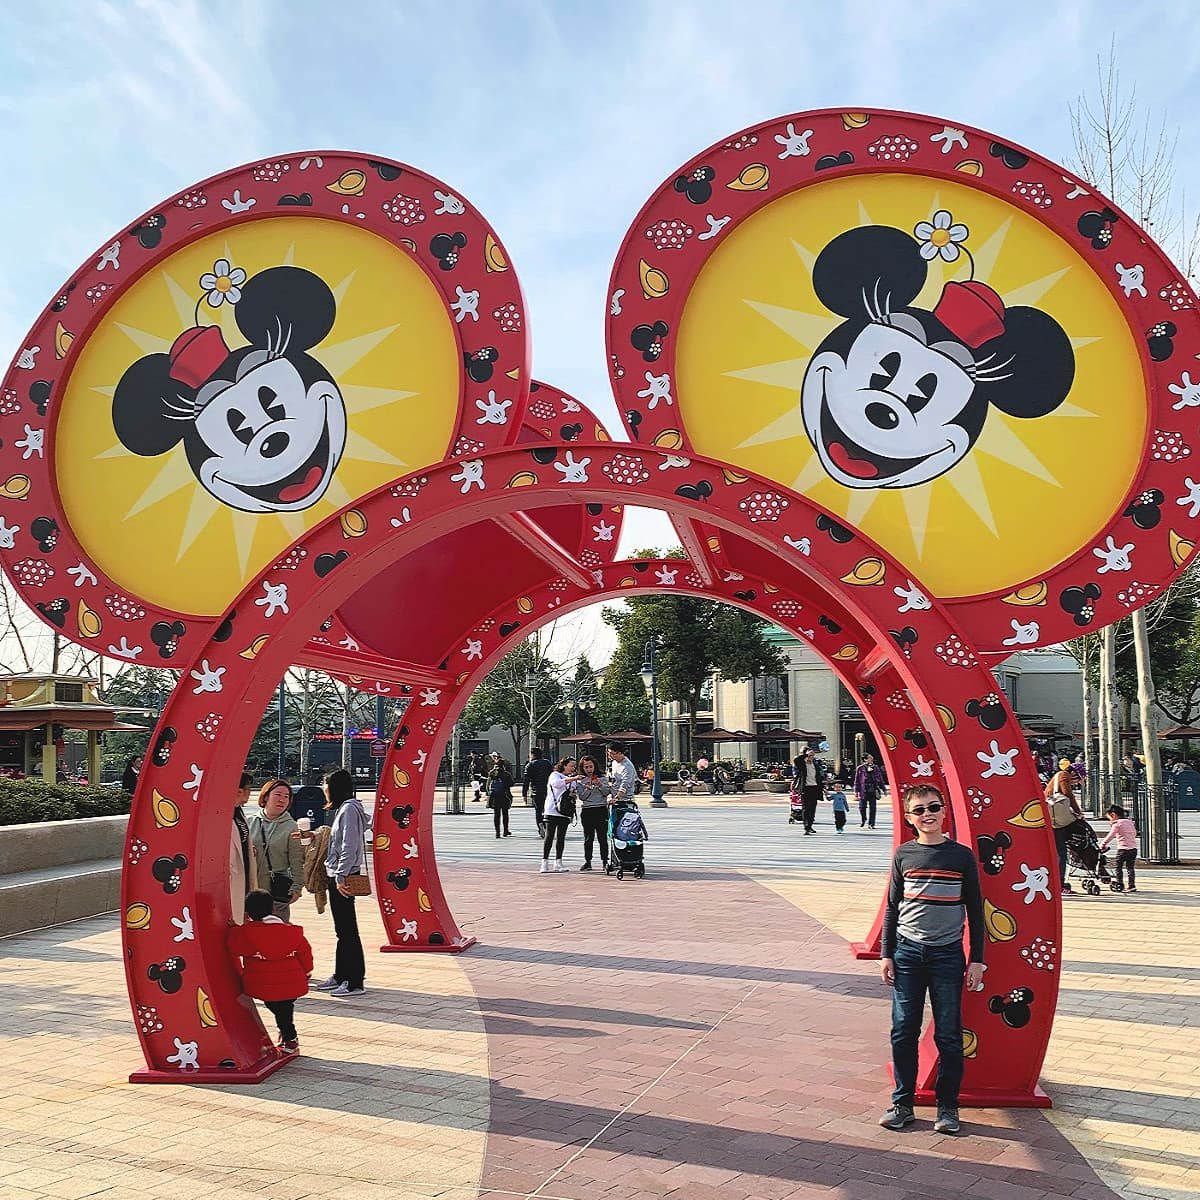 Mickey Mouse arches in Shanghai Disneyland's Disneytown